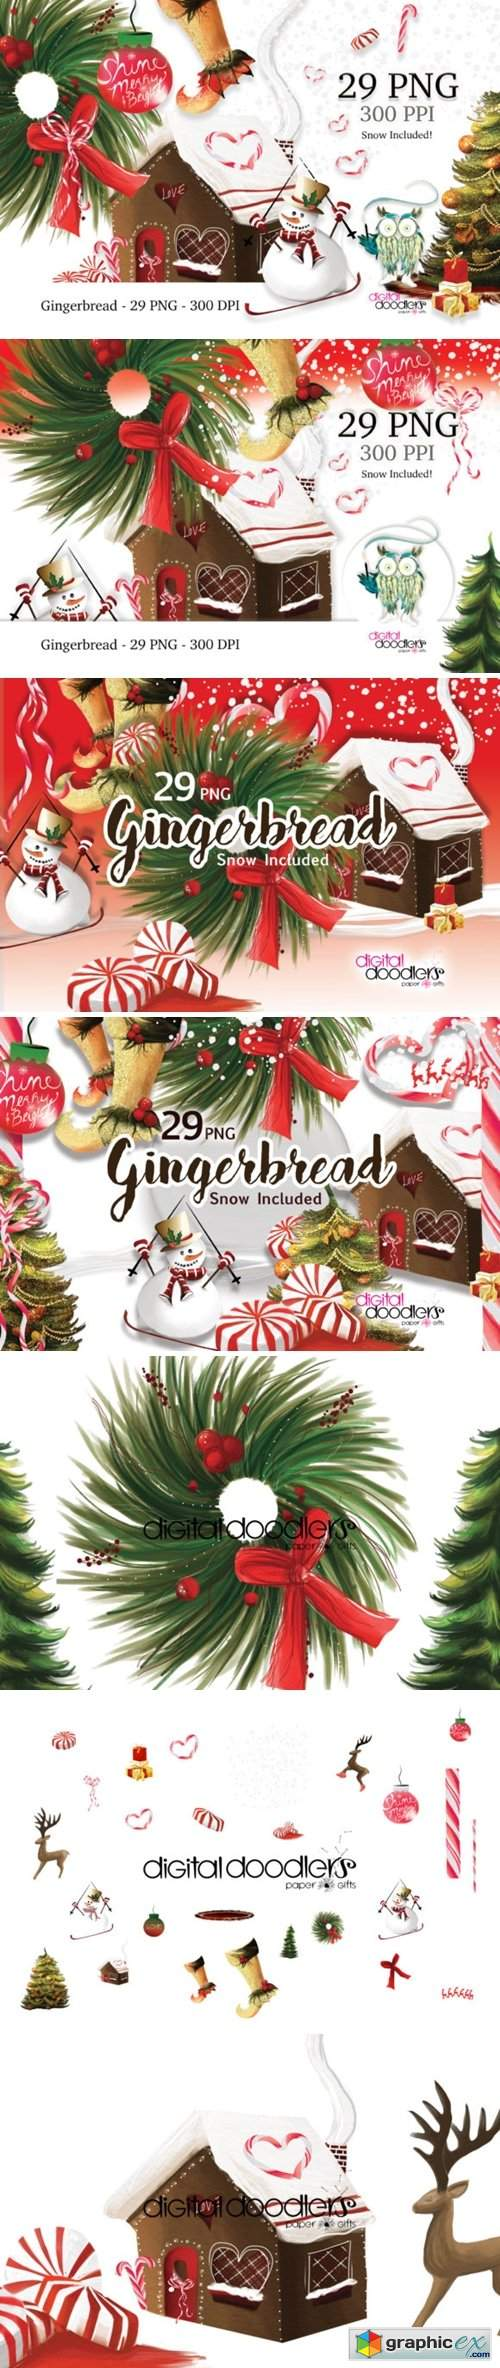 Gingerbread Christmas Graphics